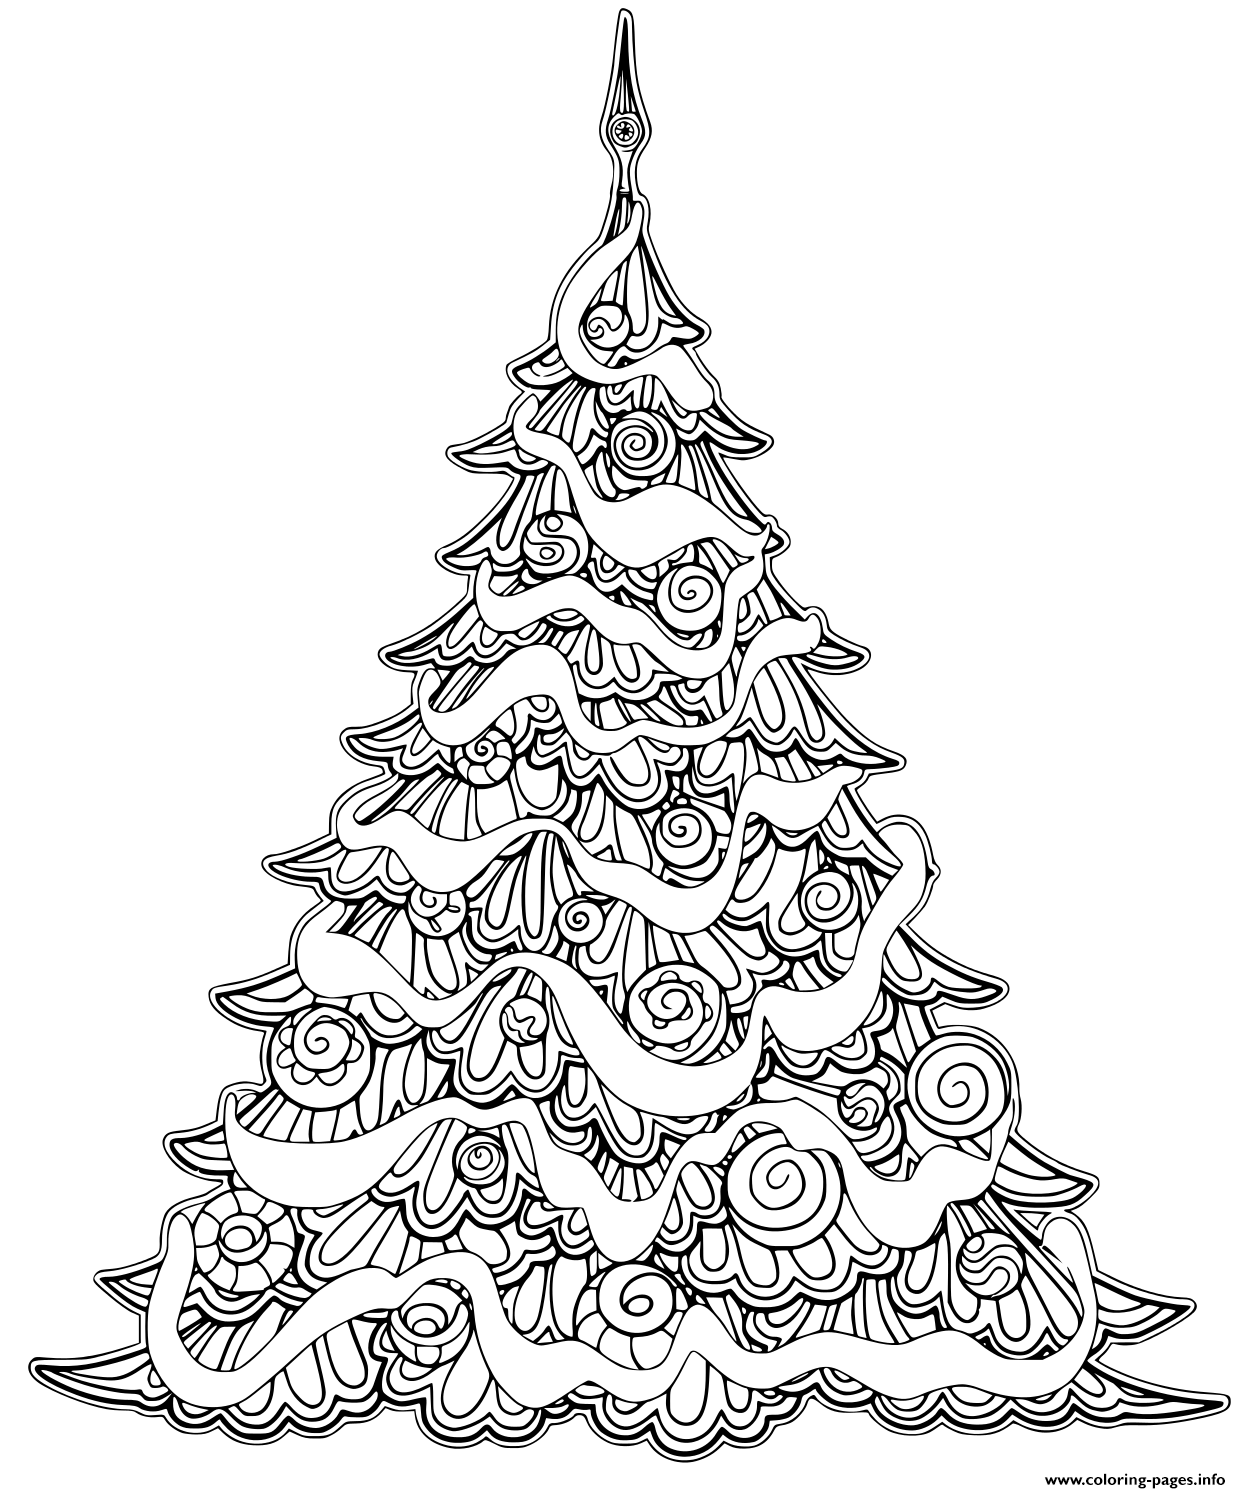 Luxury Christmas Tree Contour Drawing coloring pages